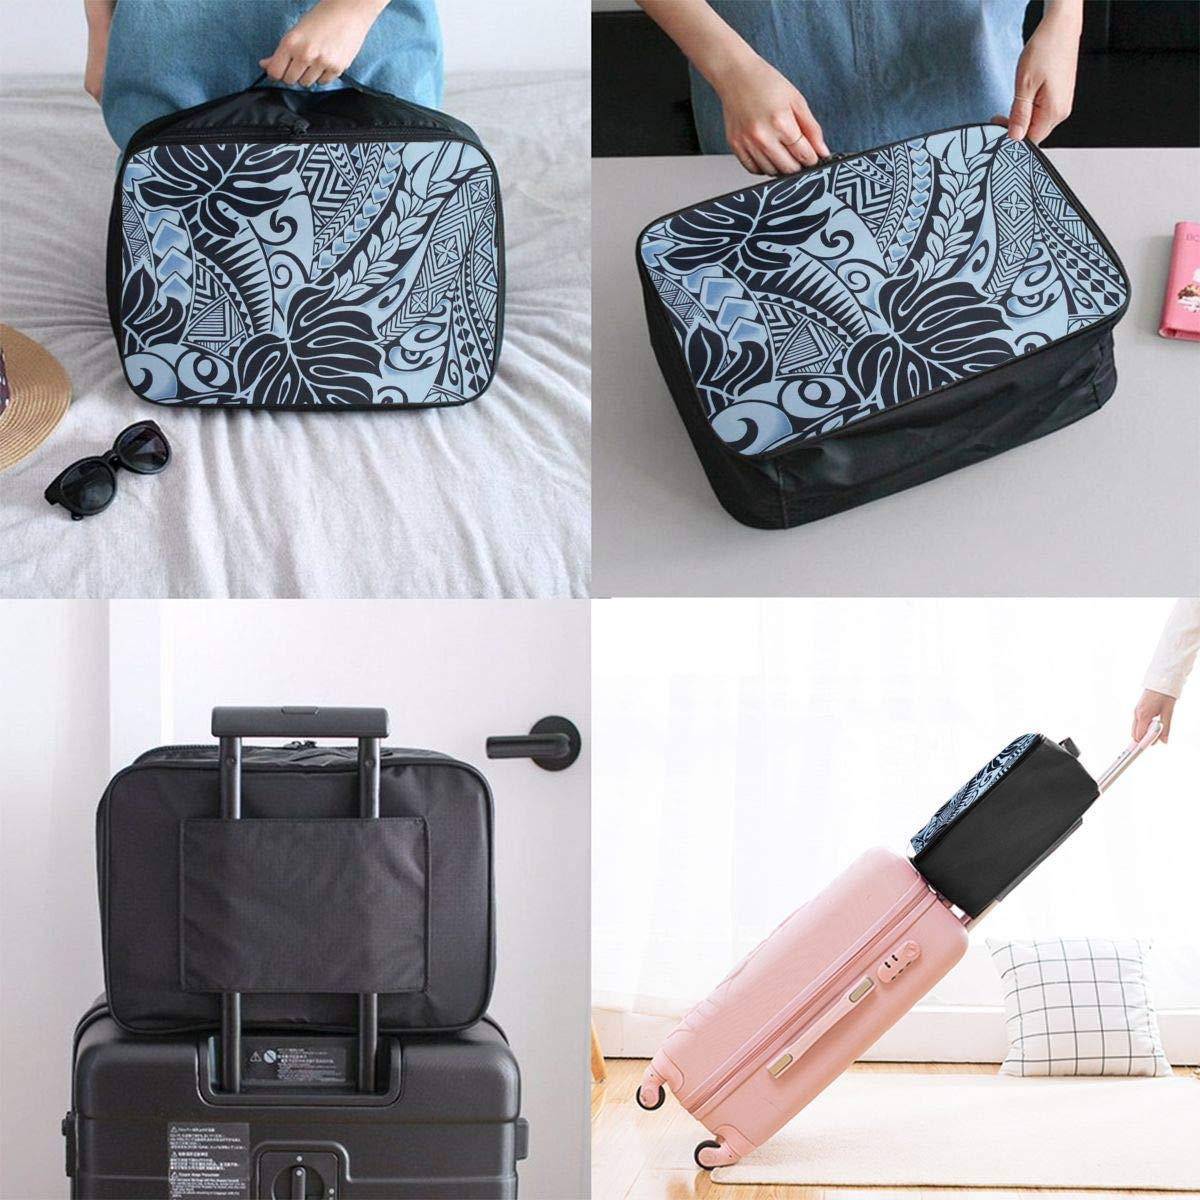 Nylon Lightweight Hand Bag Water Resistant Toiletry Bag Sweet Potato Tacos Pattern Overnight Bag Camping Sports Travel Duffle Bag Weekend Bags In Trolley Handle